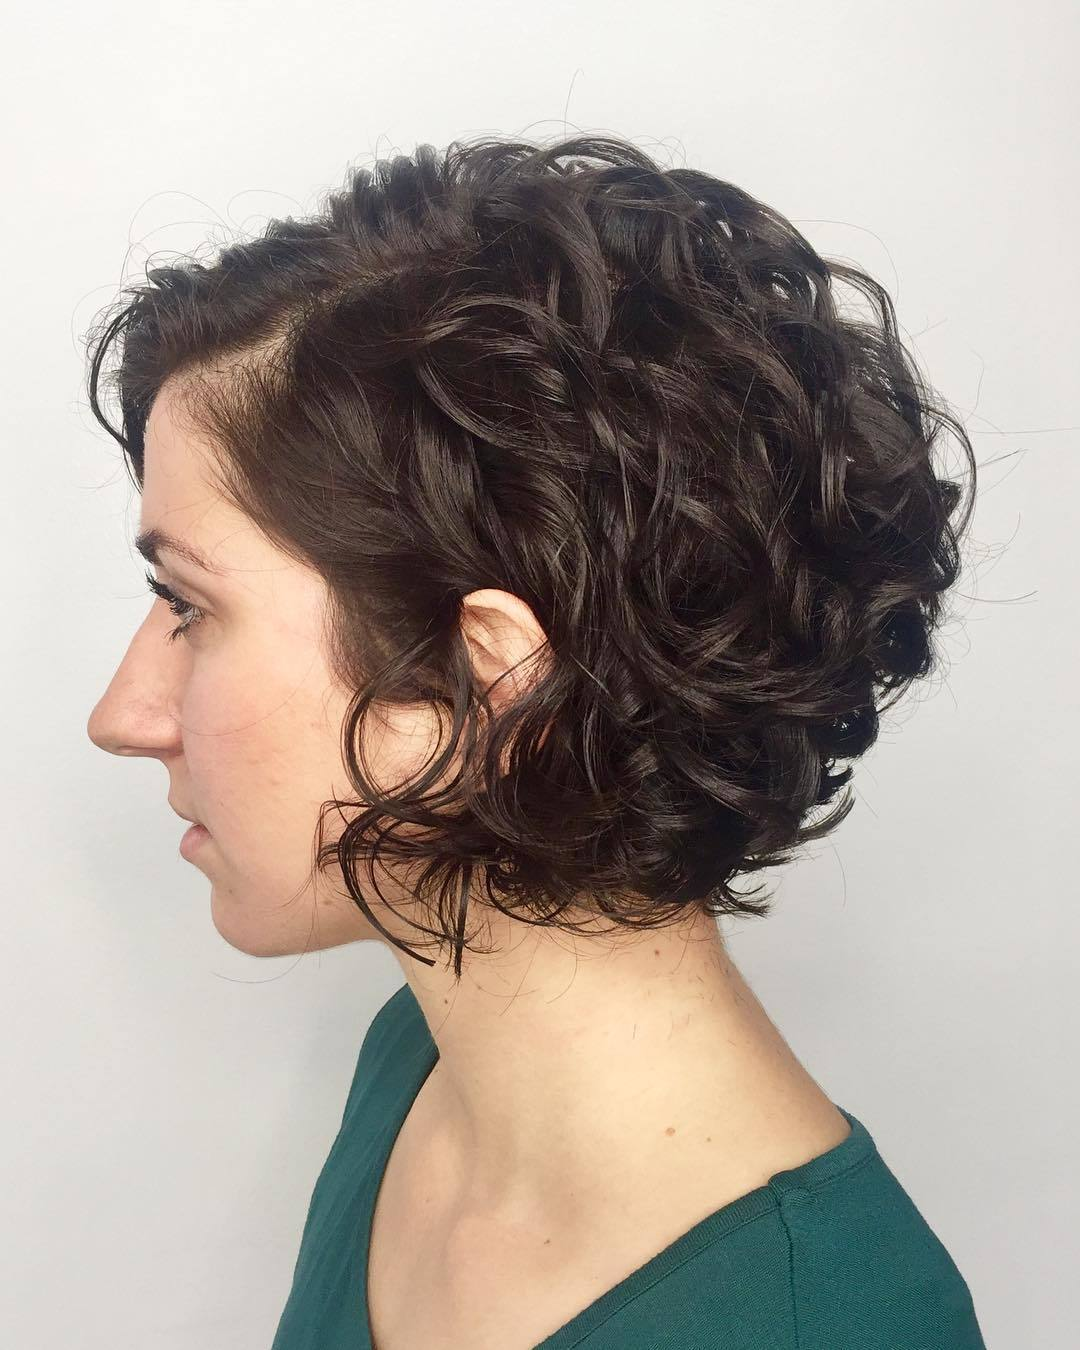 Graduated bob hairstyles: Woman with dark brown curly graduated bob haircut in a studio